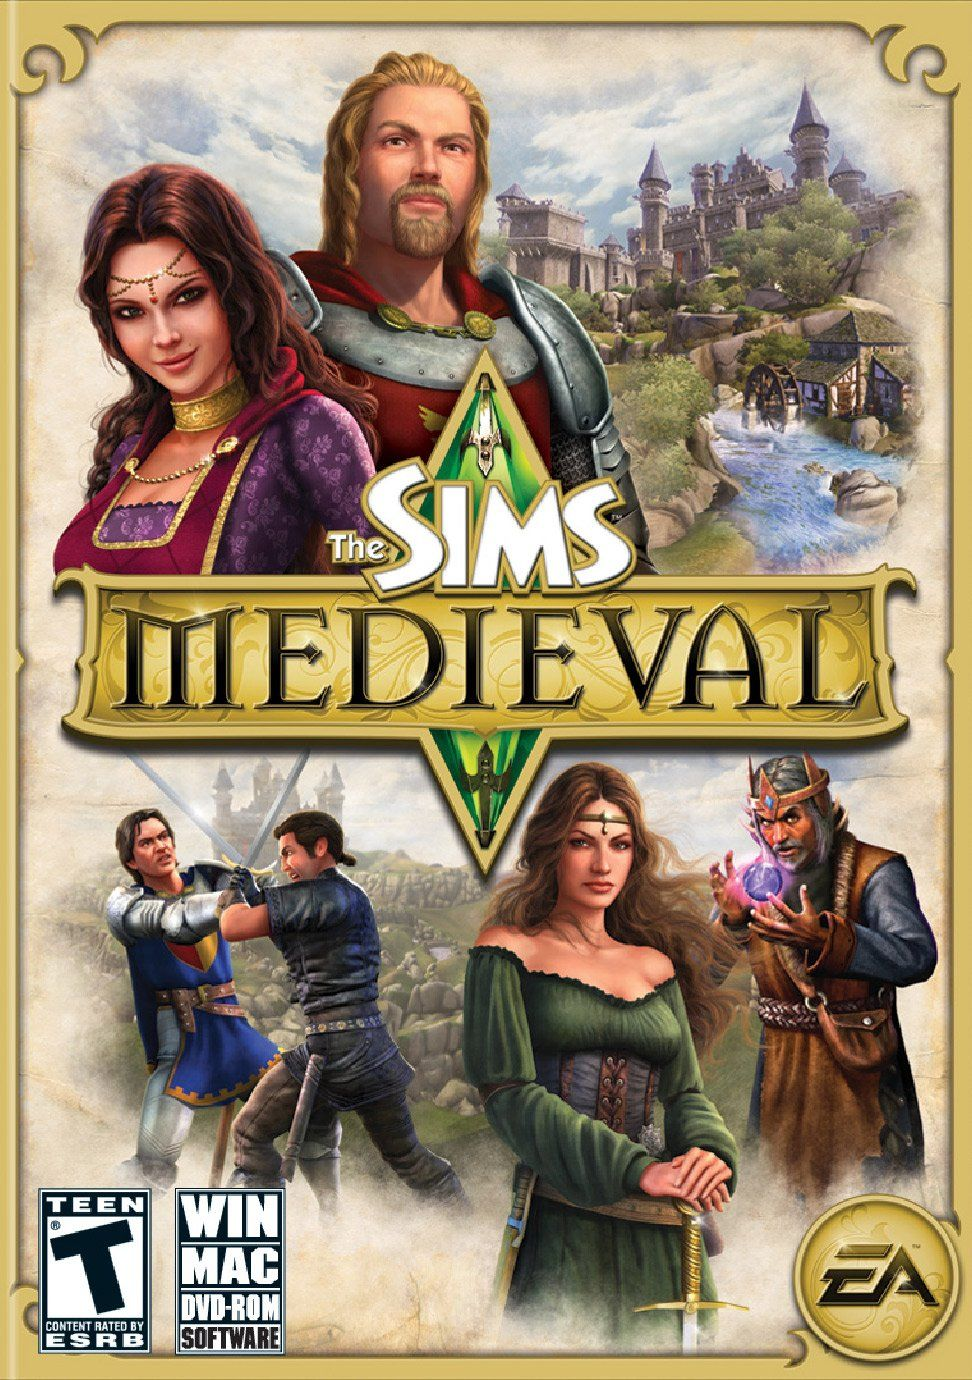 Look book Sims medieval, Sims, Sims 4